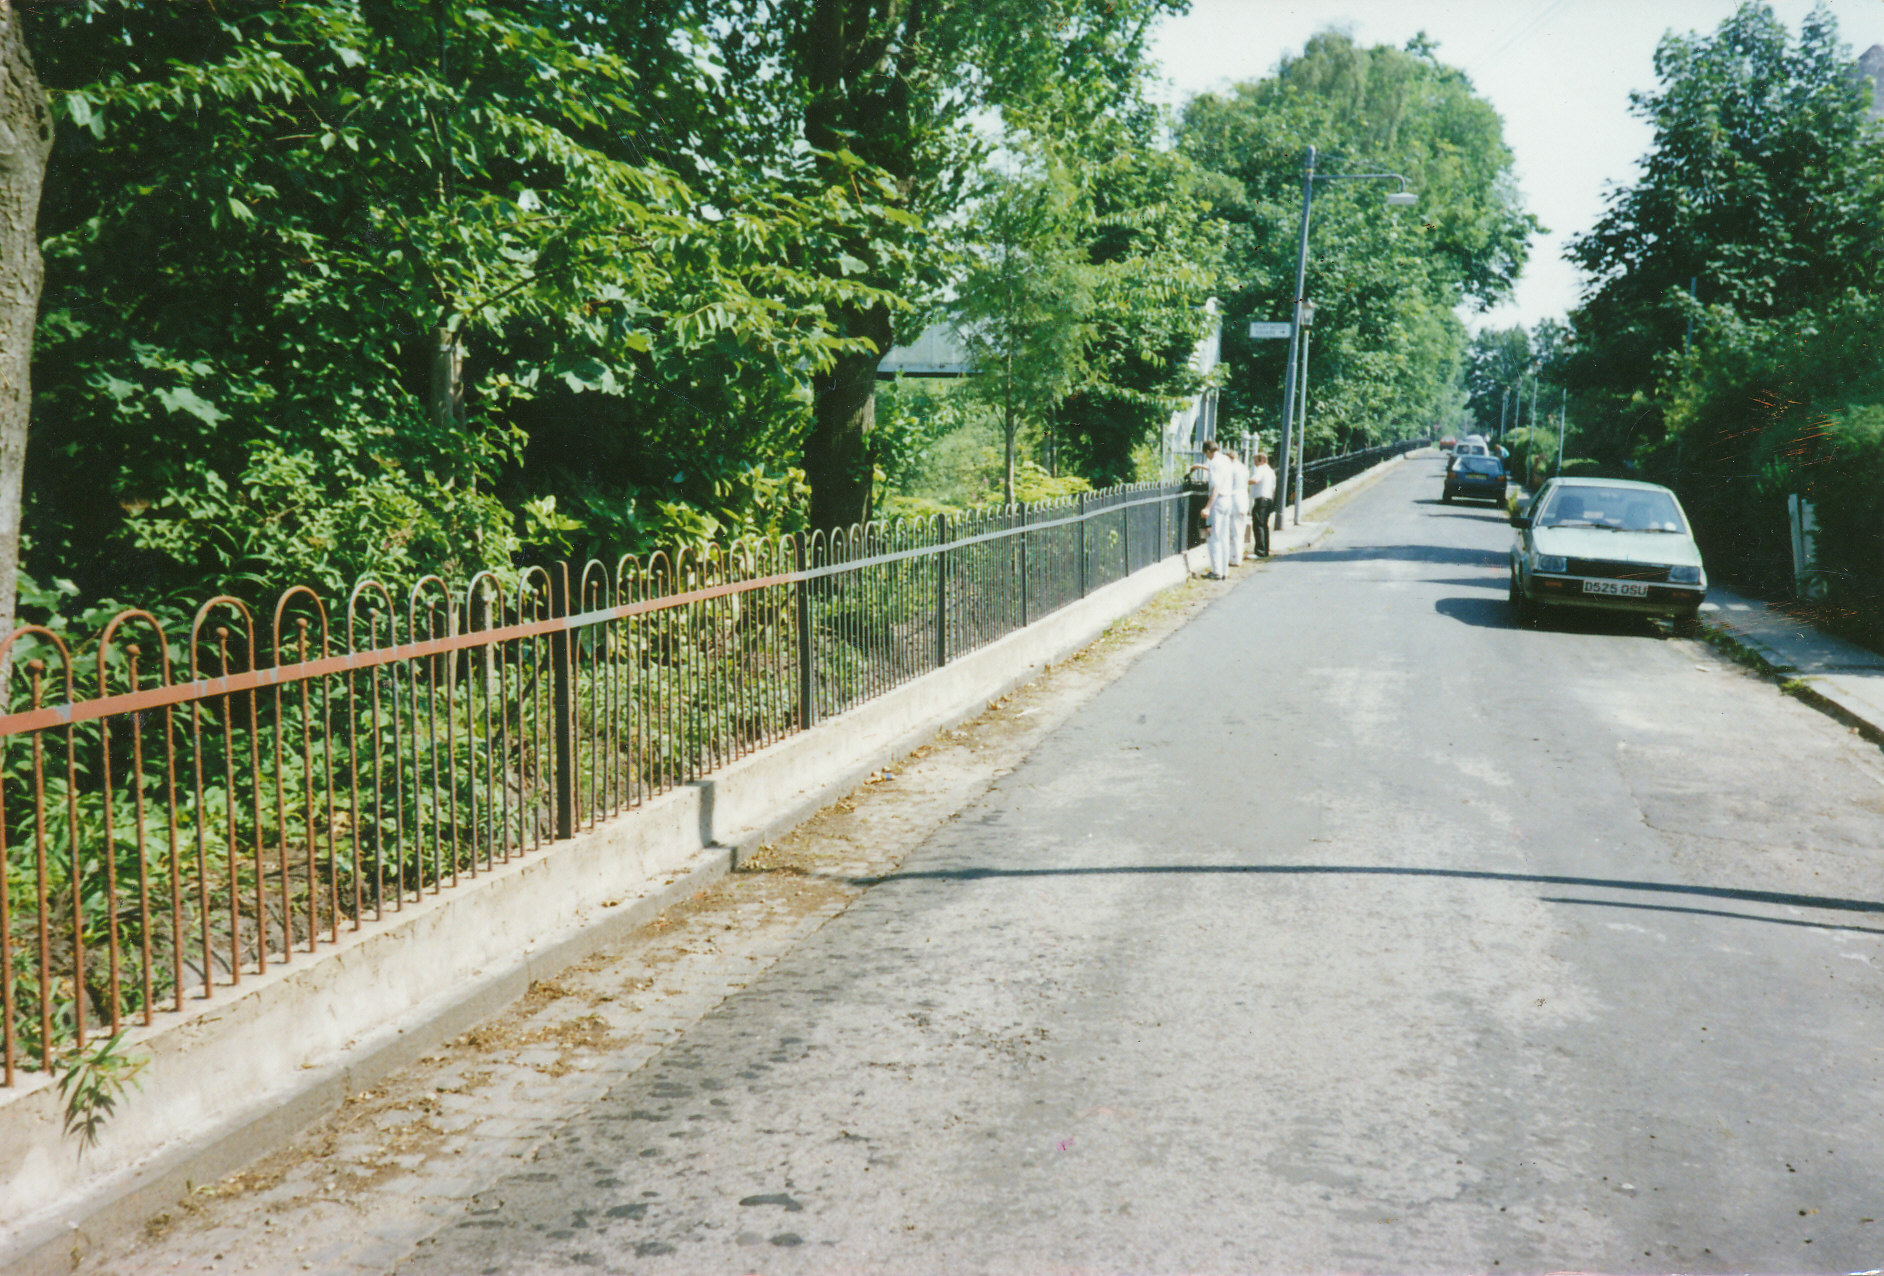 Railings after fence and concrete repair and painting, circa 1990